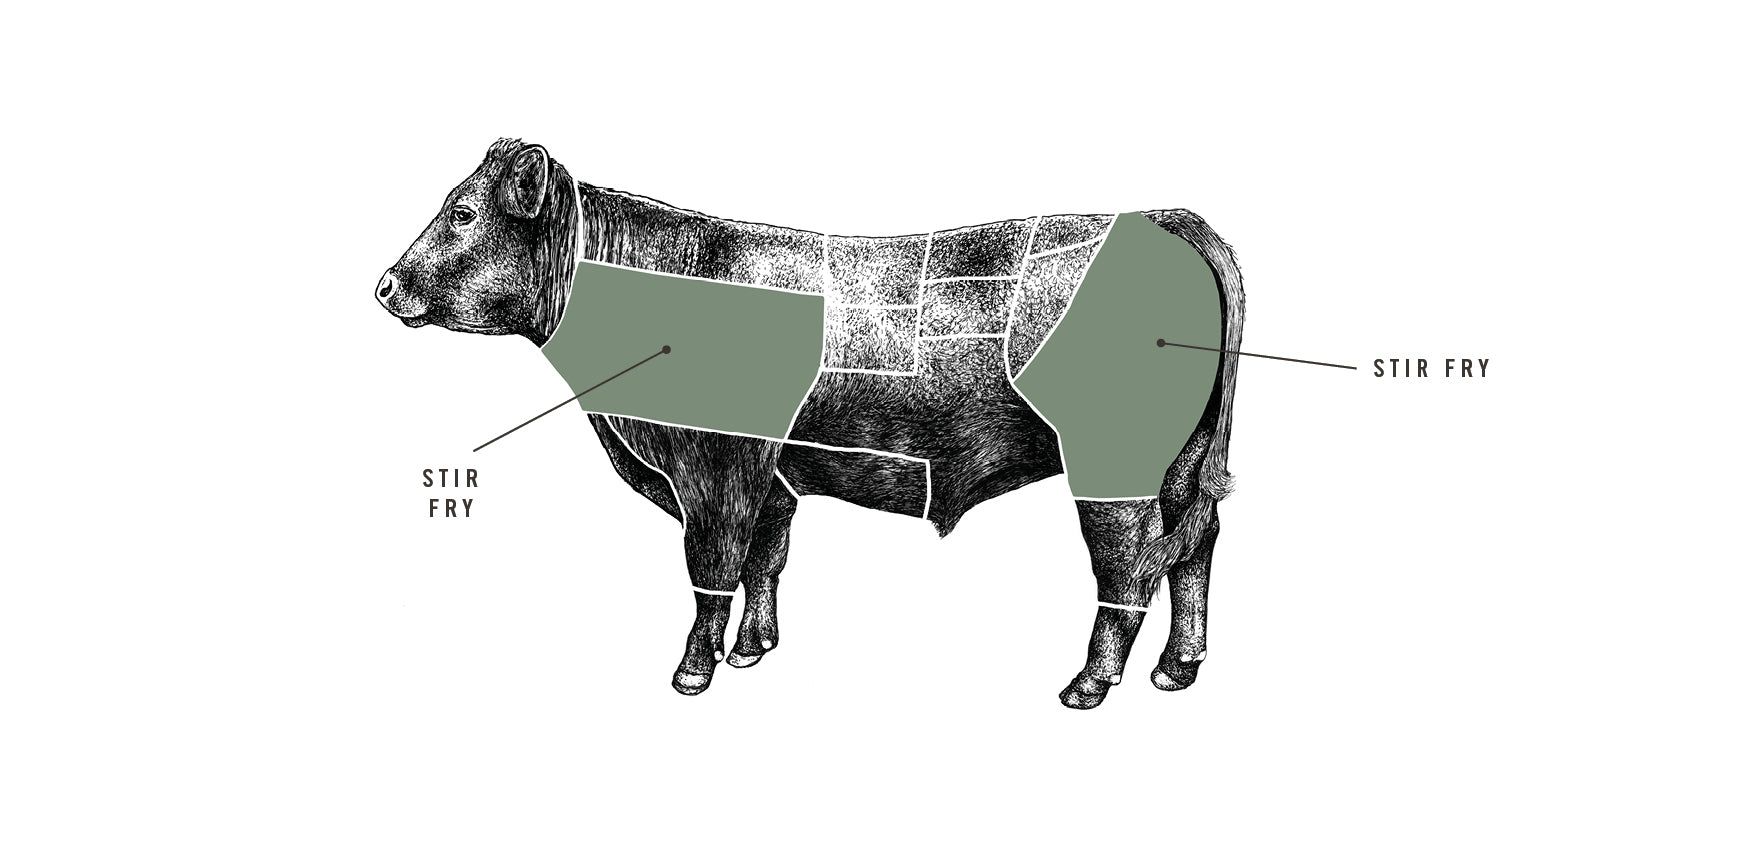 Grass Fed Beef Stir Fry meat cuts diagram